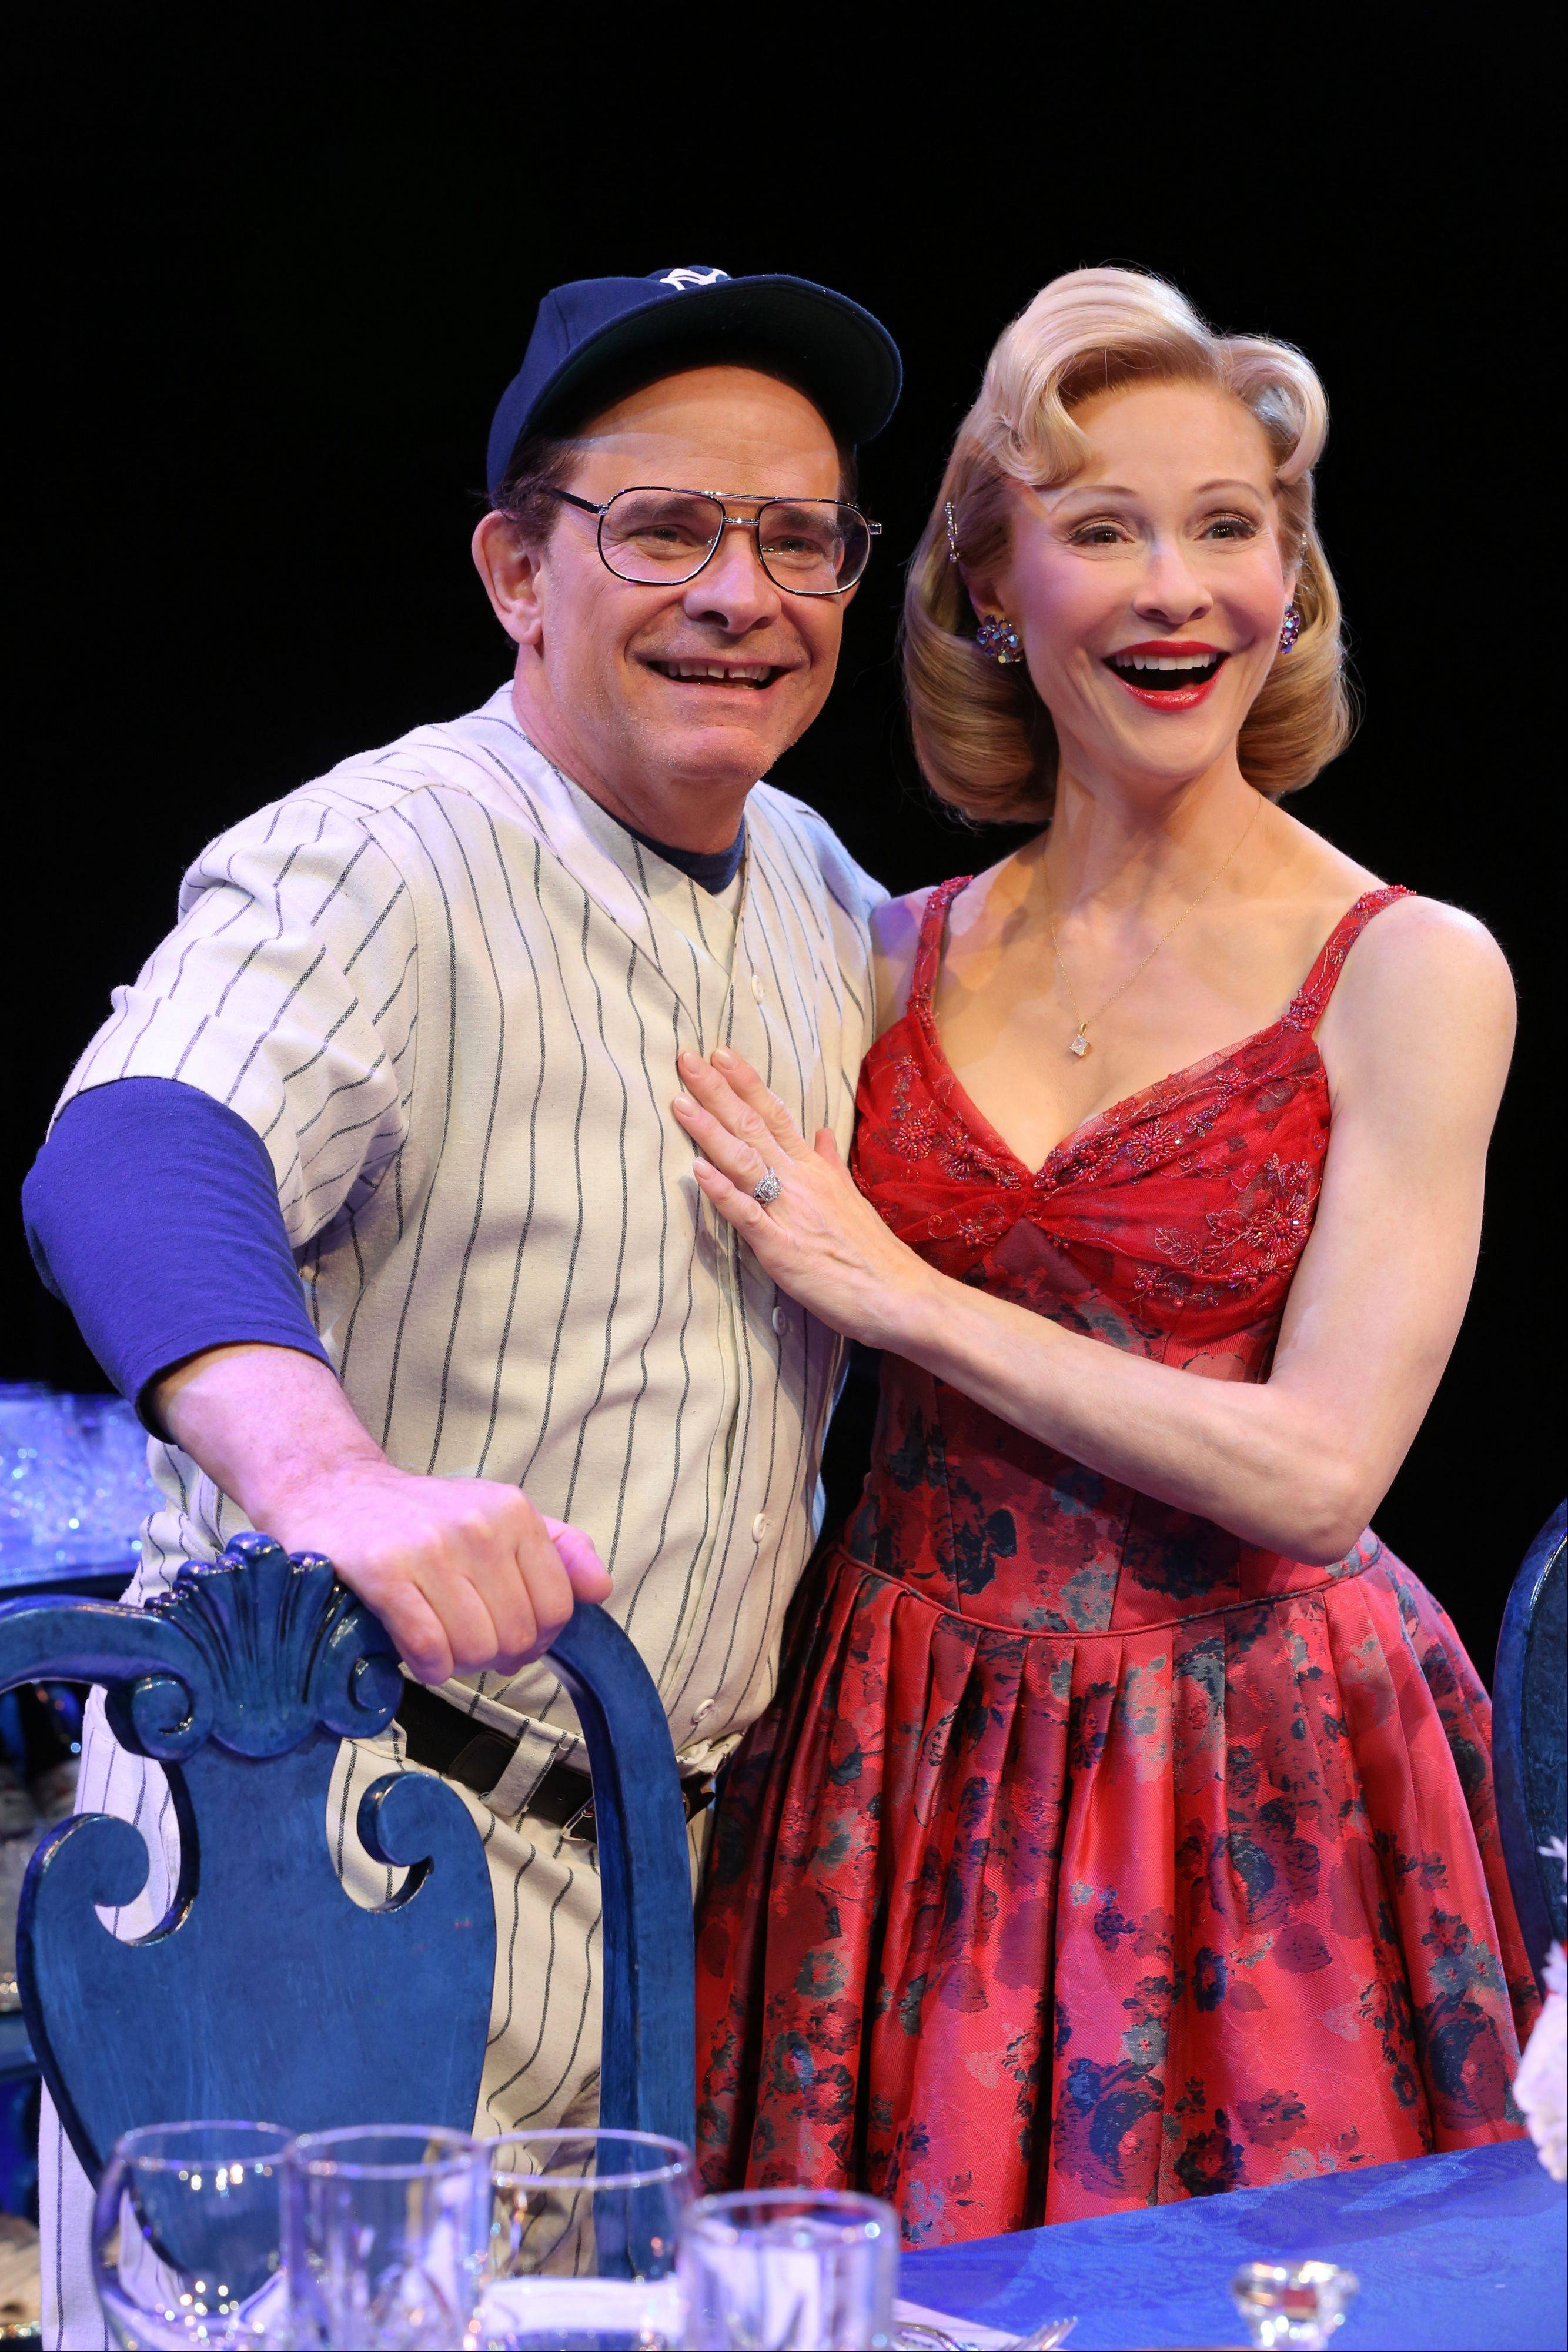 Peter Scolari, left, and his wife, actress Tracy Shayne, portray baseball legend Yogi Berra and his wife, Carmen, in �Bronx Bombers,� which examines the rich history of the New York Yankees.